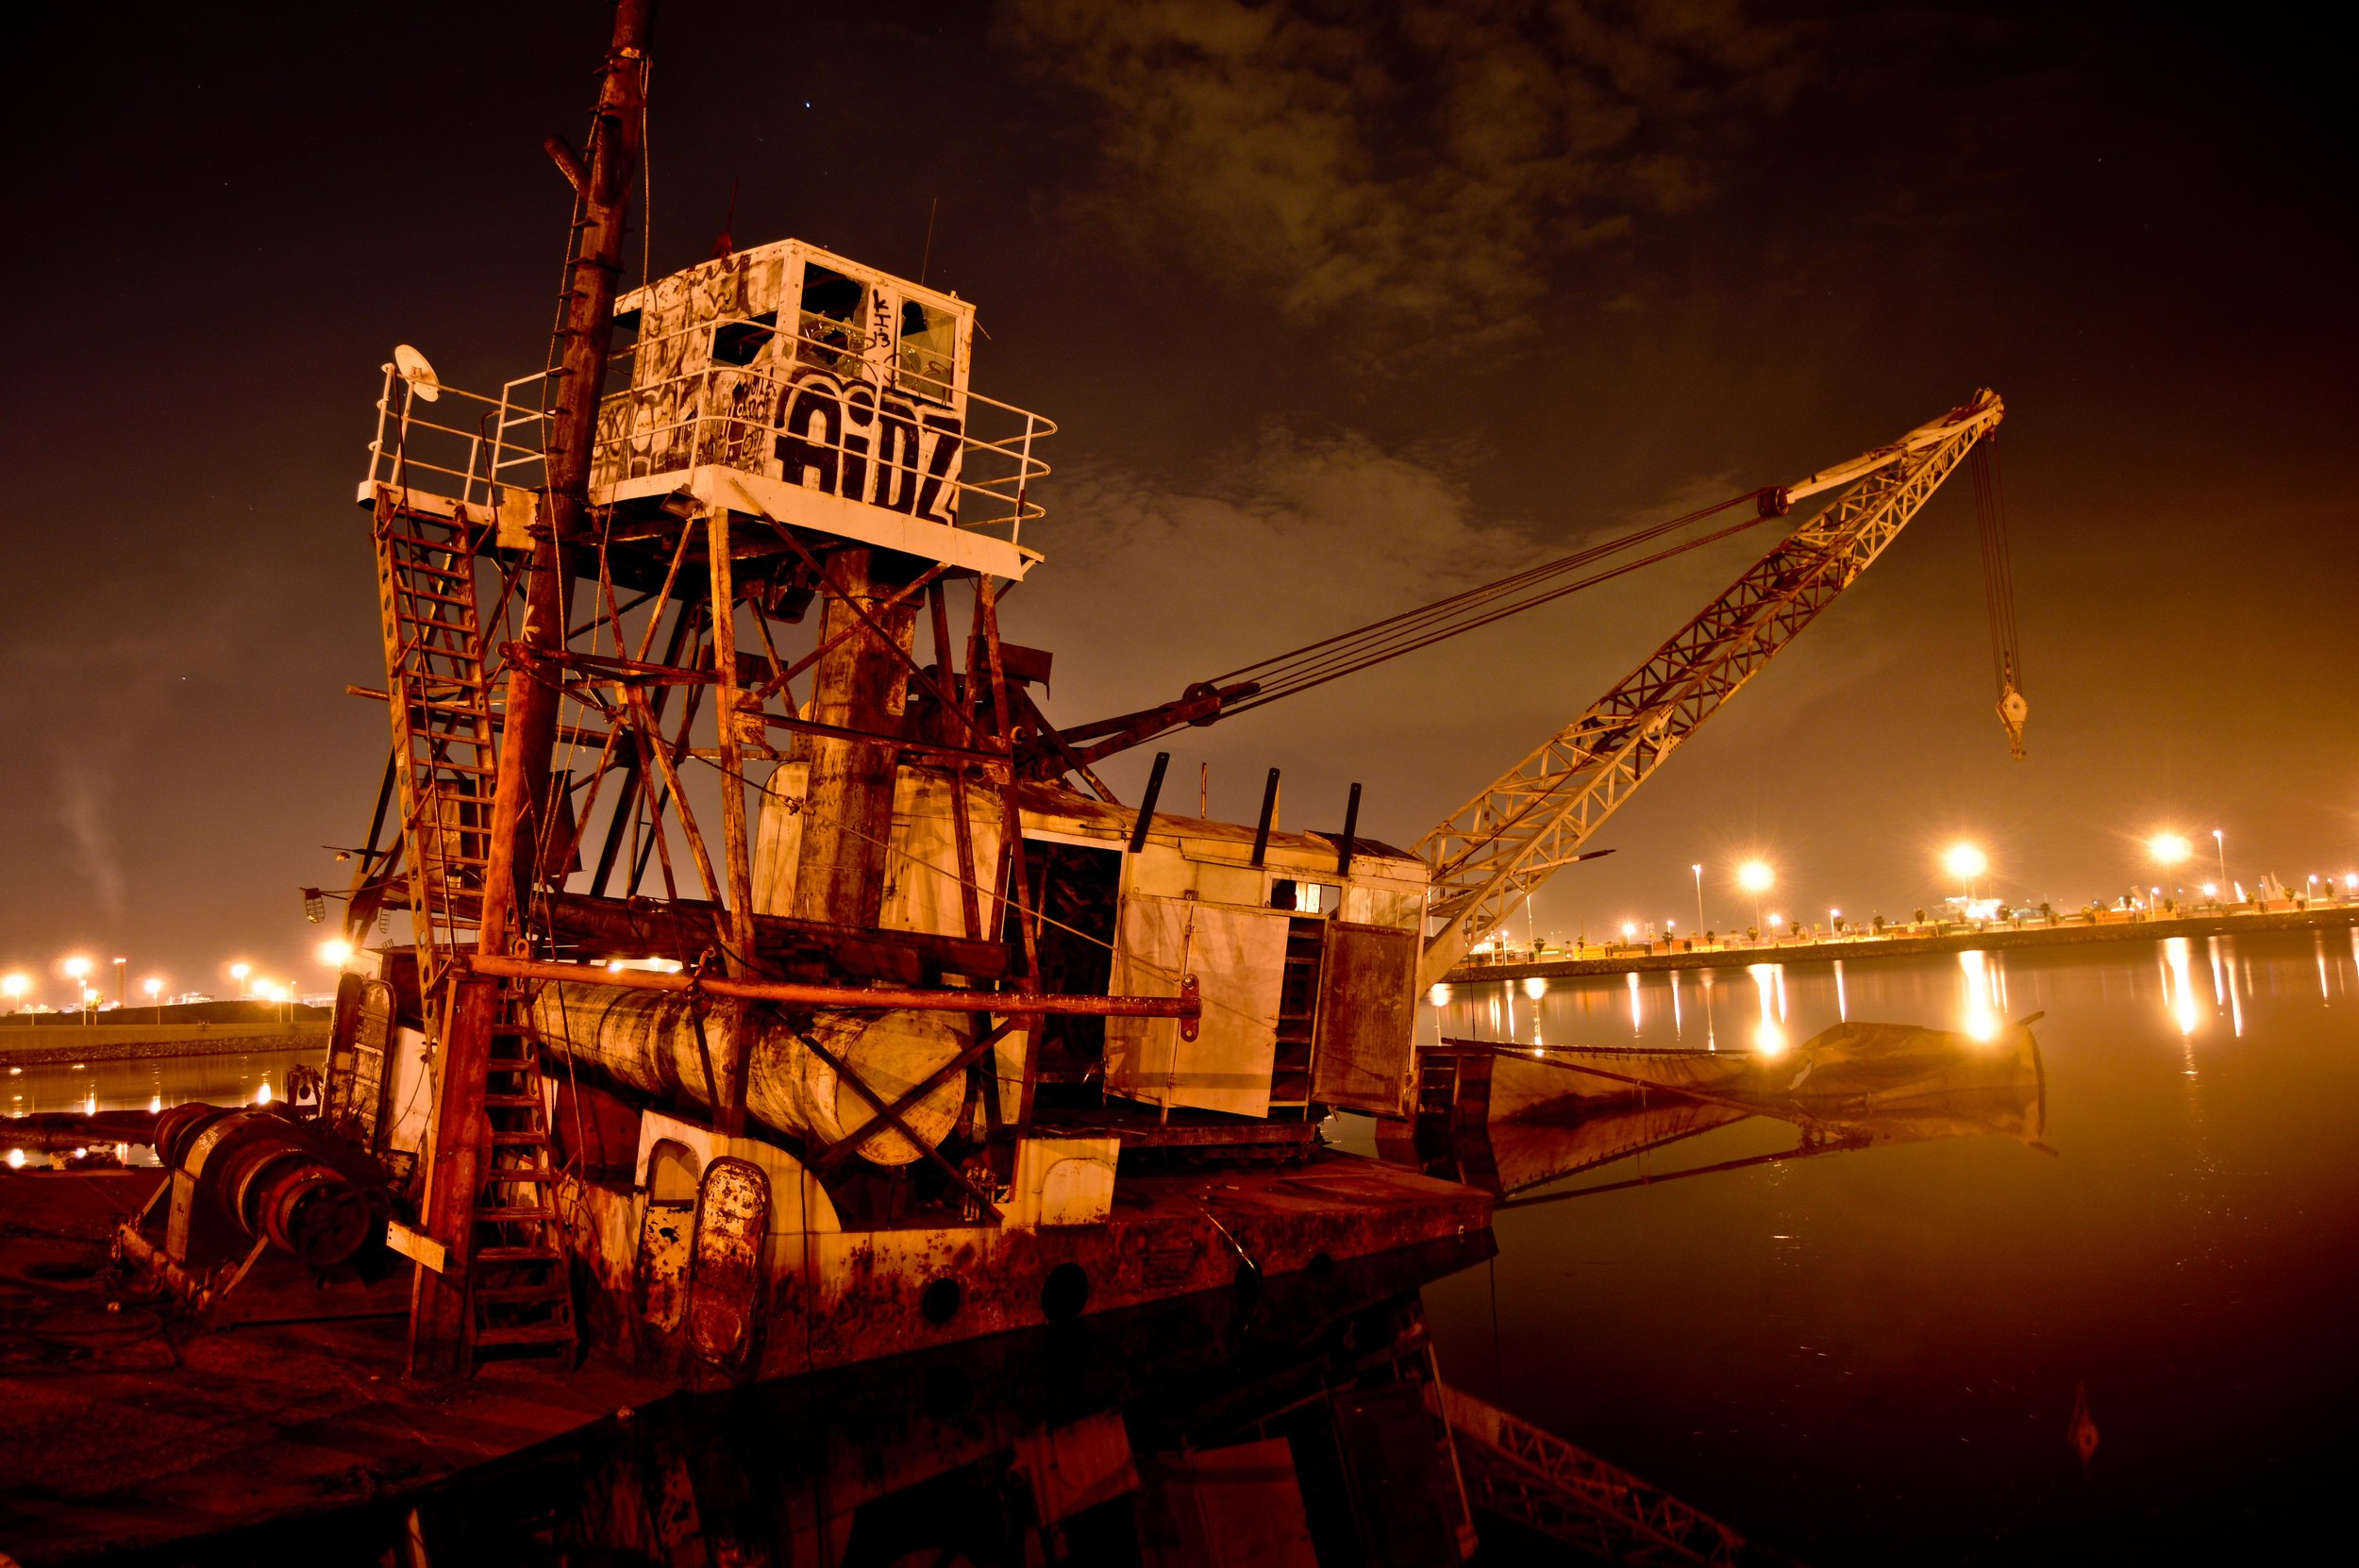 Abandoned dredger in the Port of Los Angeles. Photo: Joshua Stephens